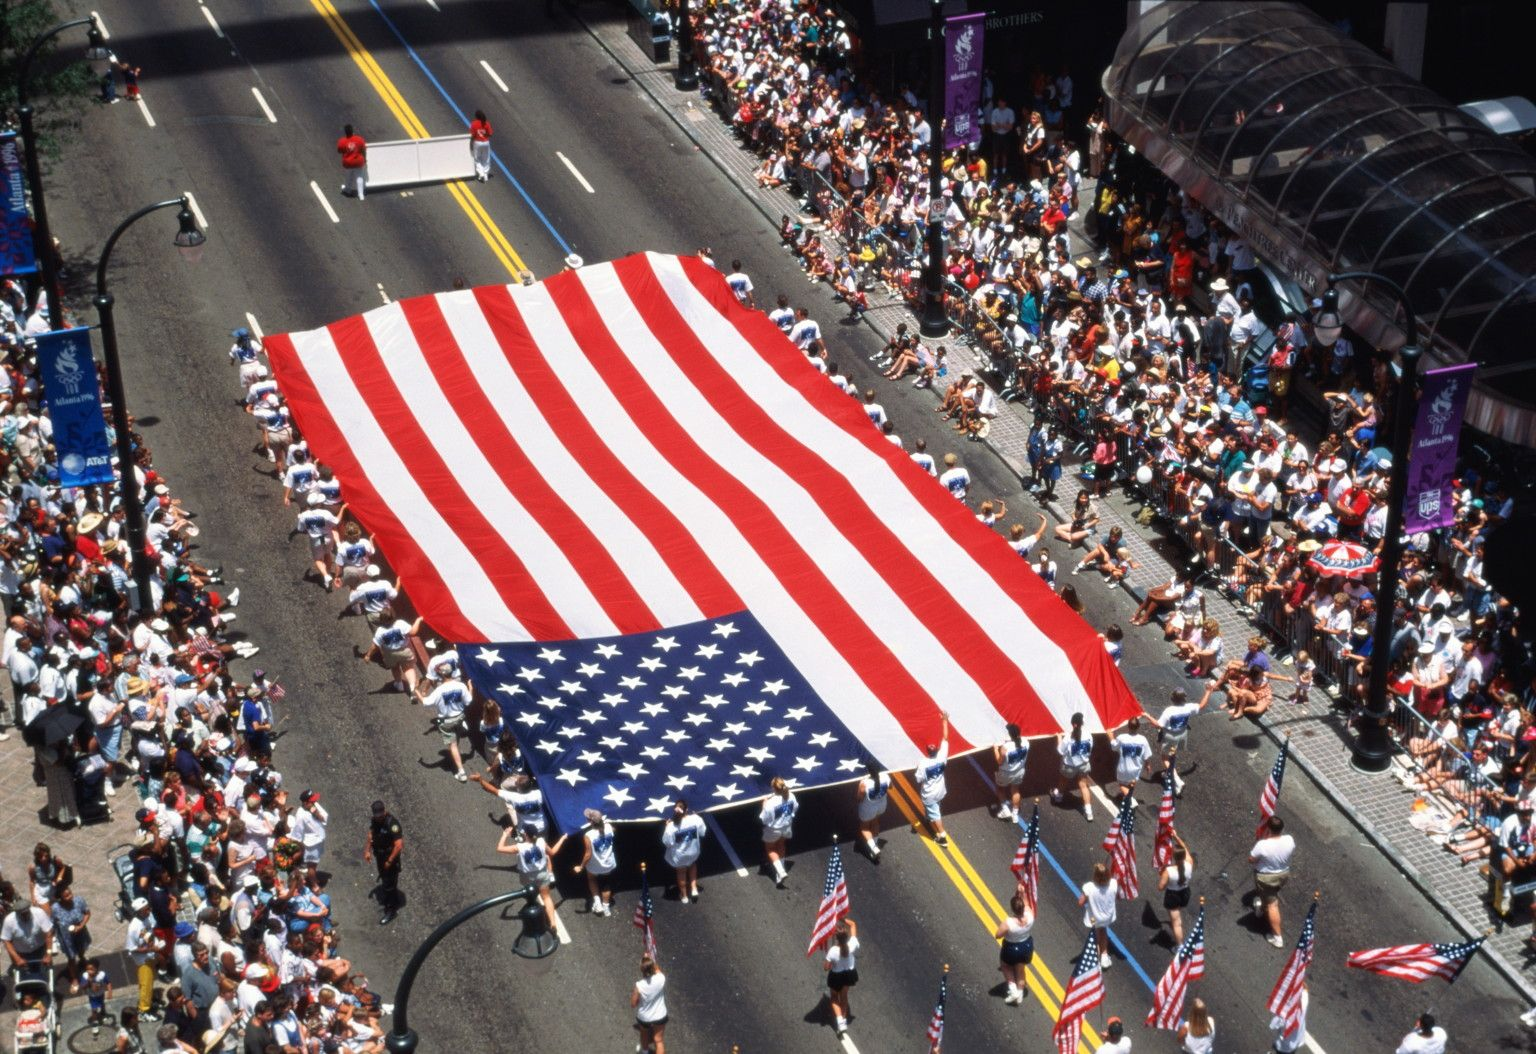 Best July 4th Parades In America 4th of july parade, Us